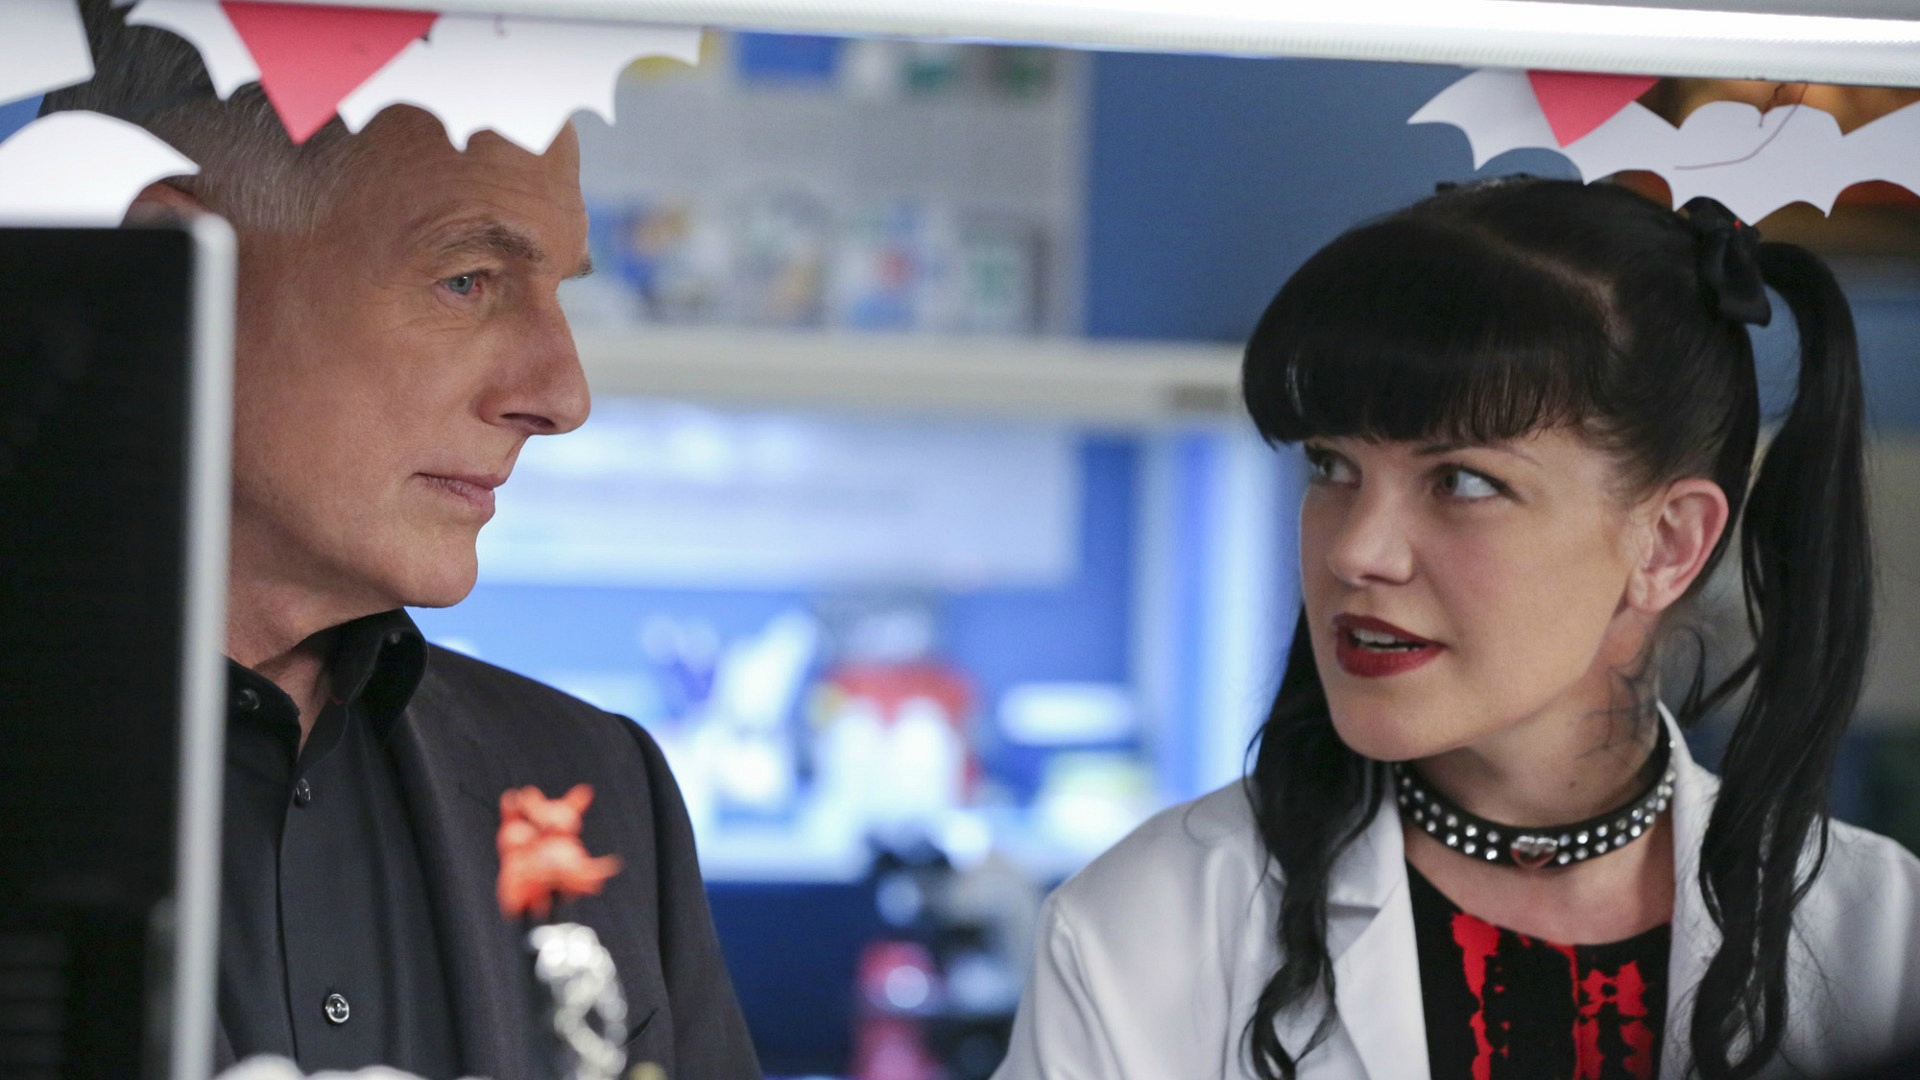 NCIS returns for a 14th season on Tuesday, Sept. 20 at 8/7c.